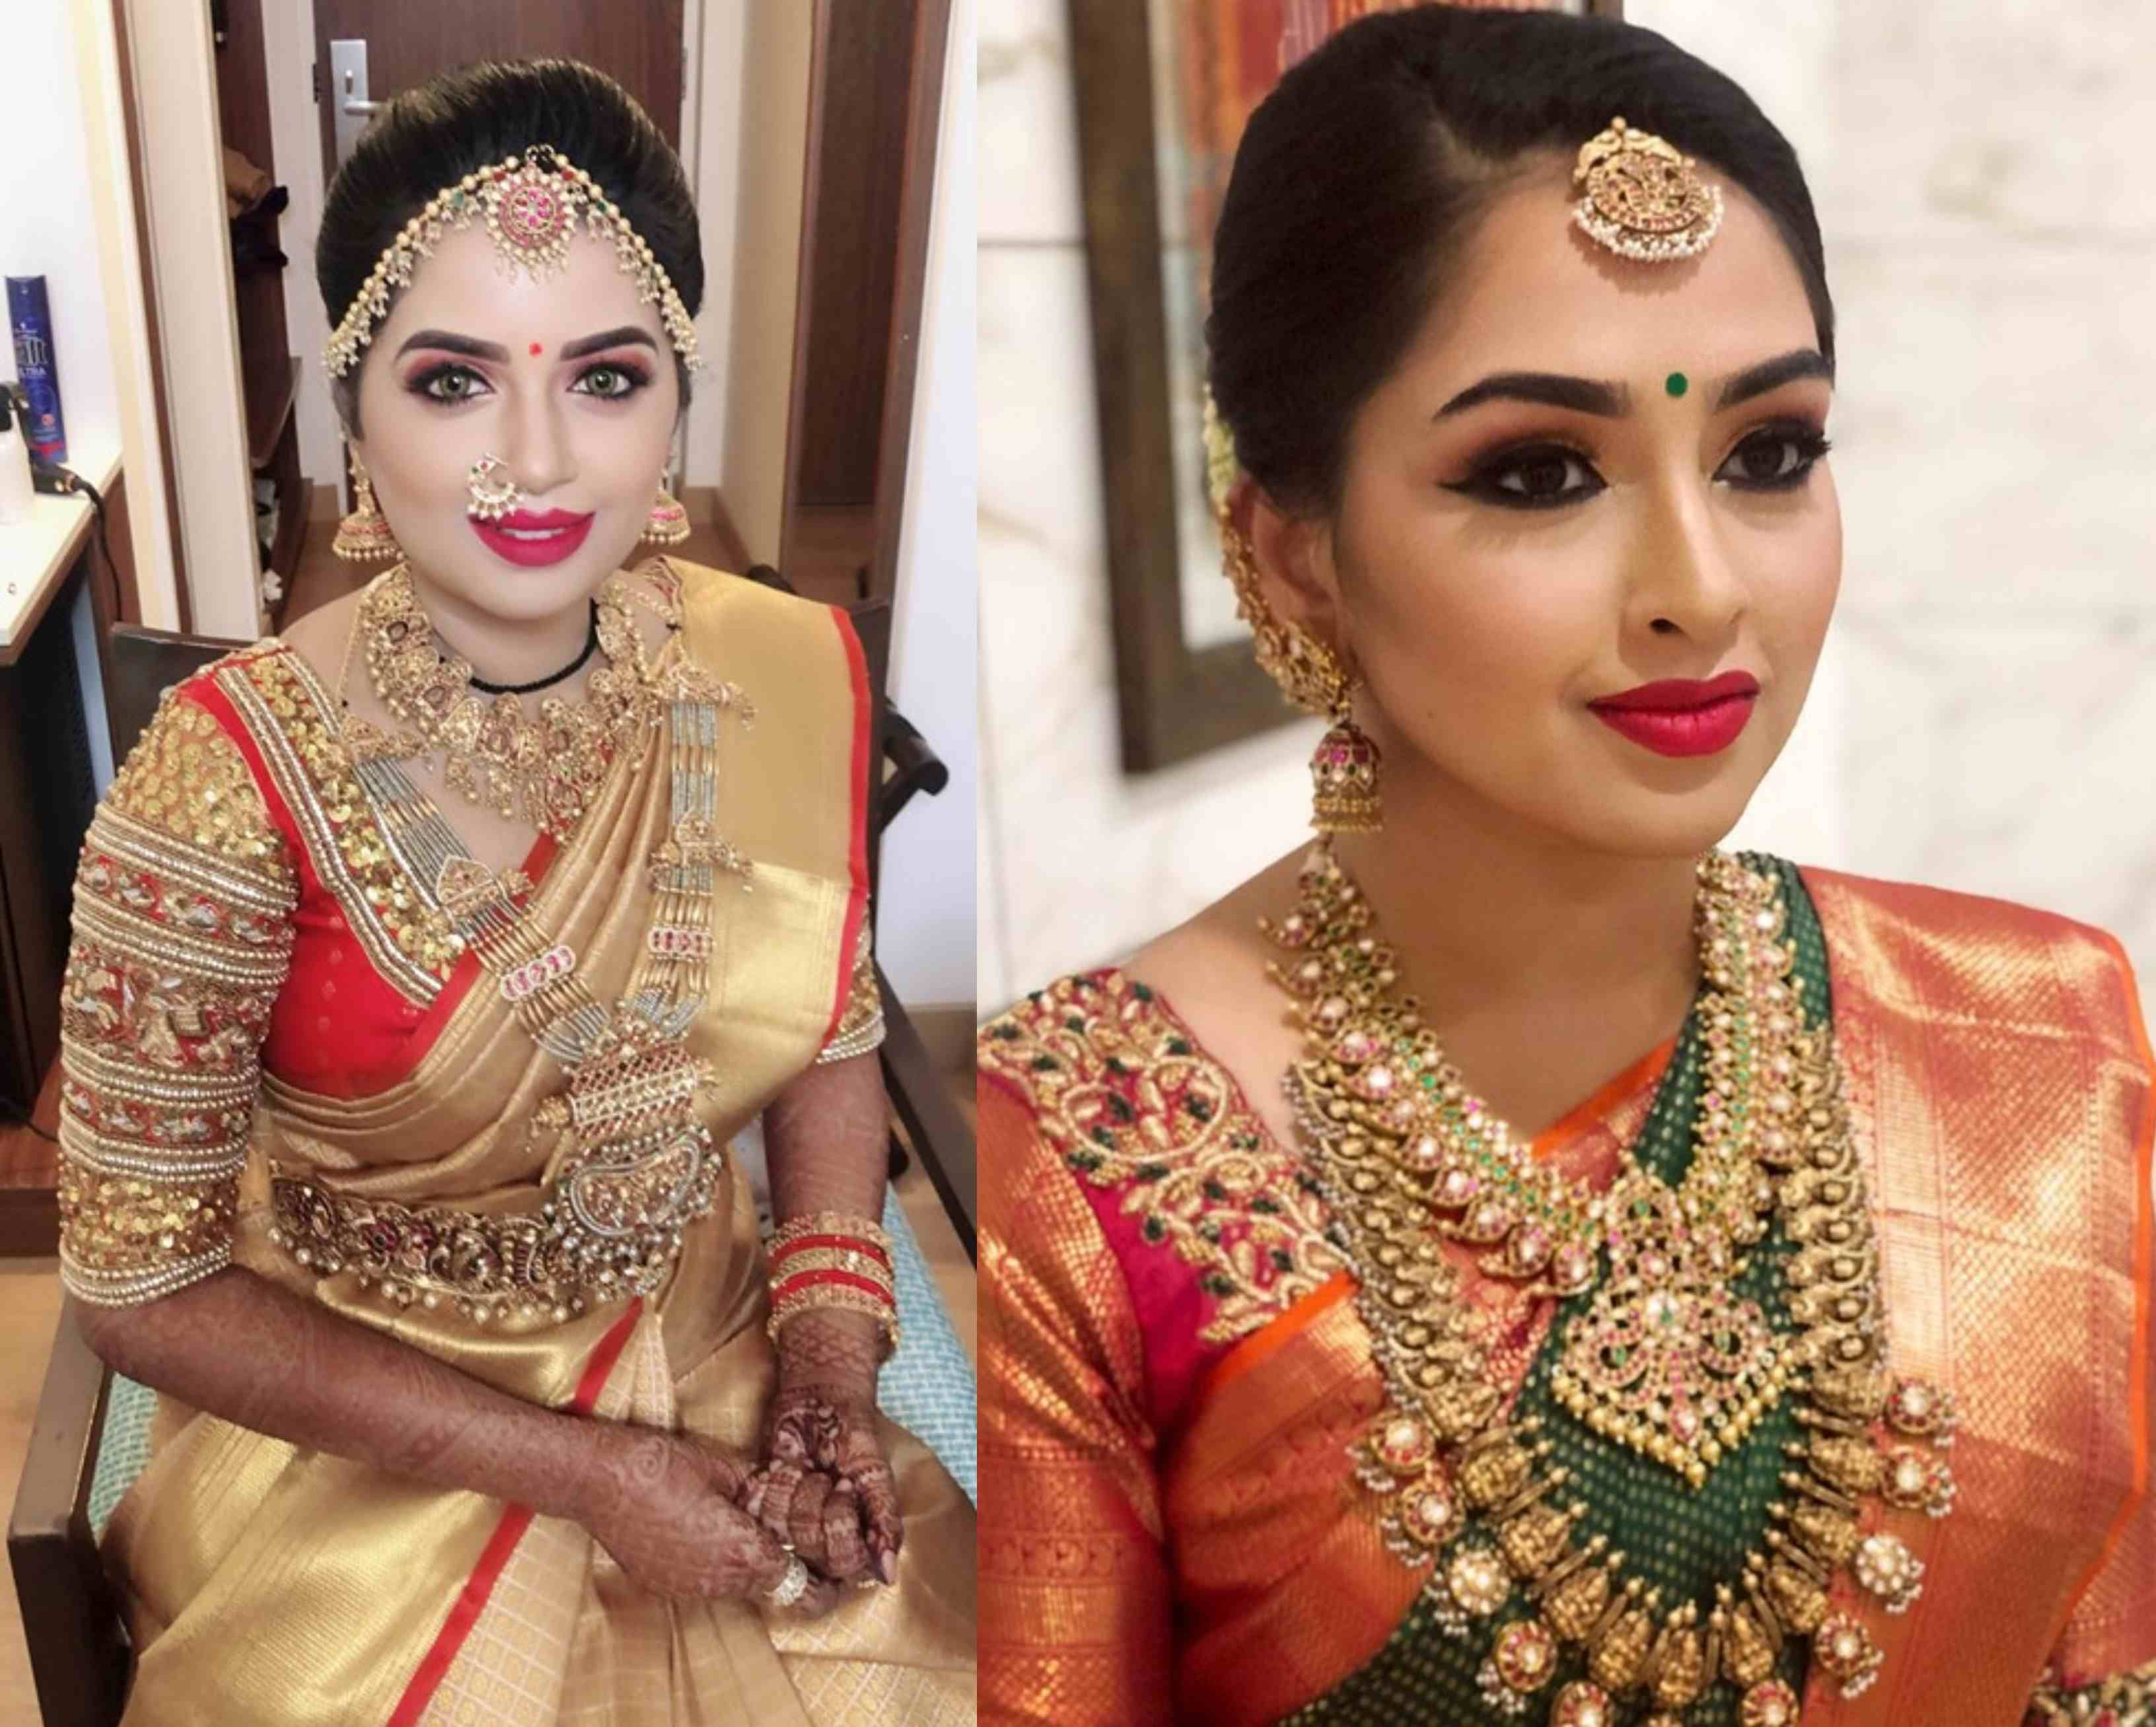 Top 15 Bridal Makeup Artists in Chennai (With images